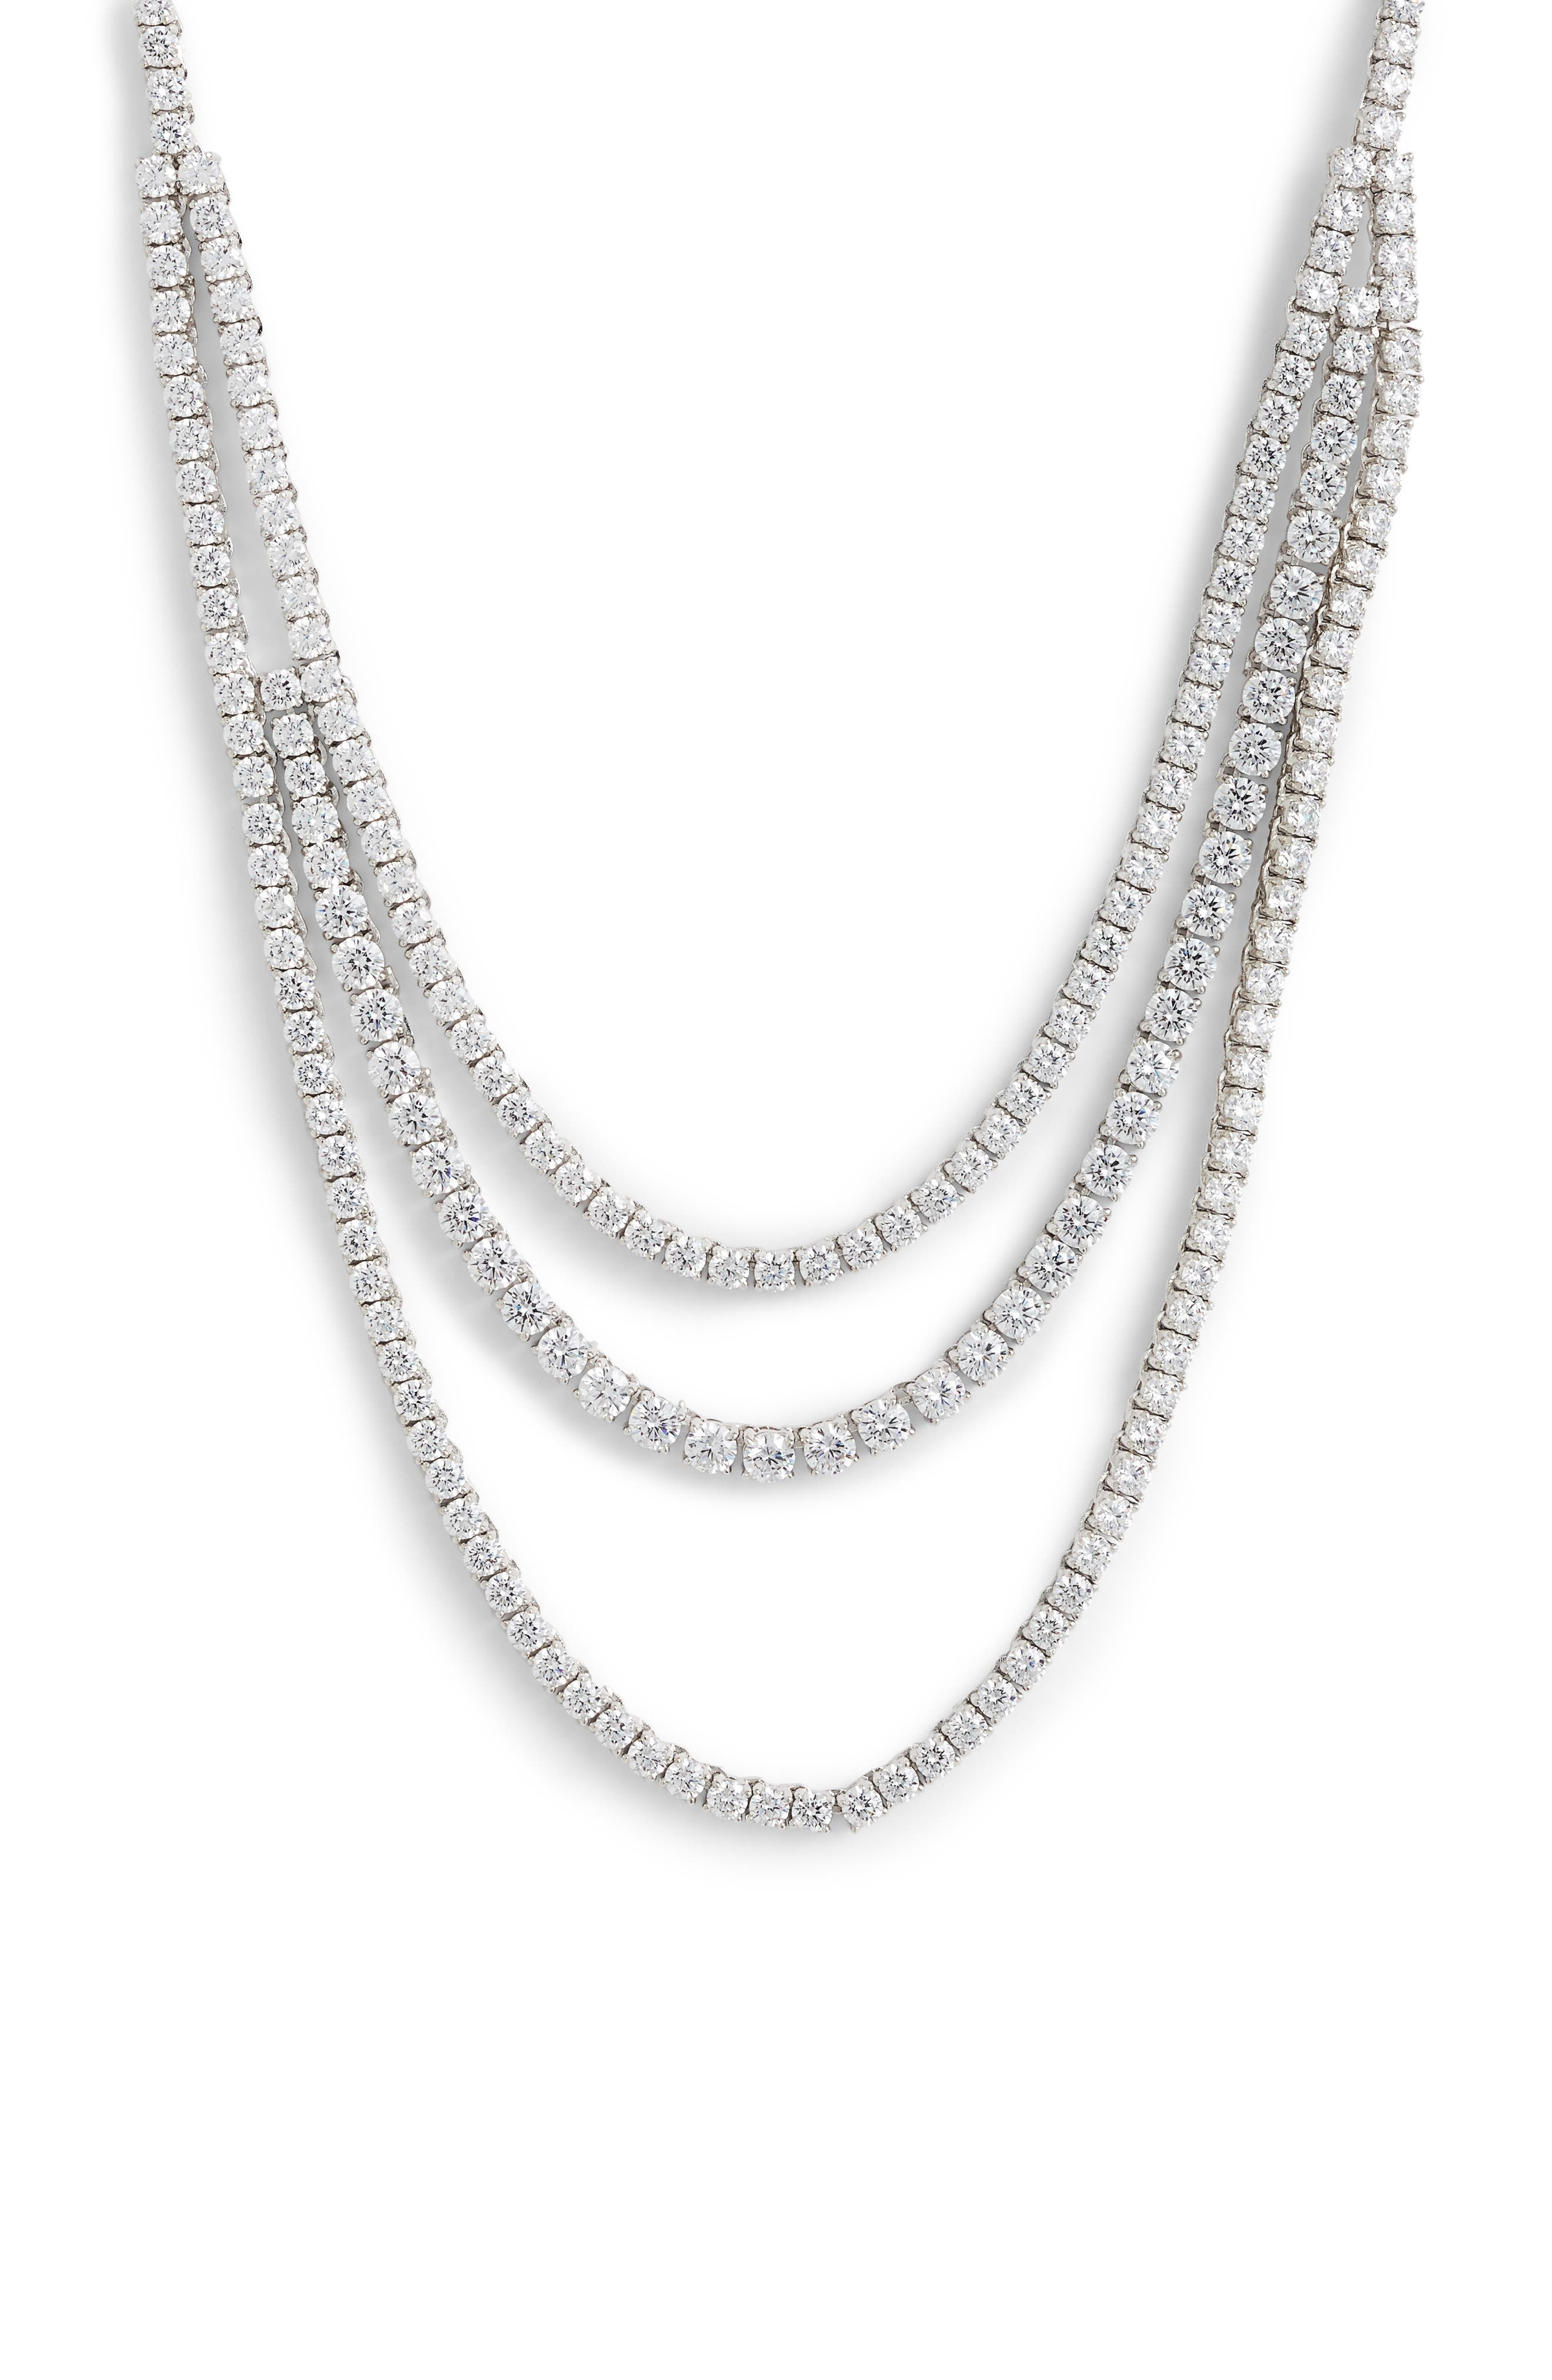 Triple Strand Tennis Necklace,                             Main thumbnail 1, color,                             CLEAR- SILVER